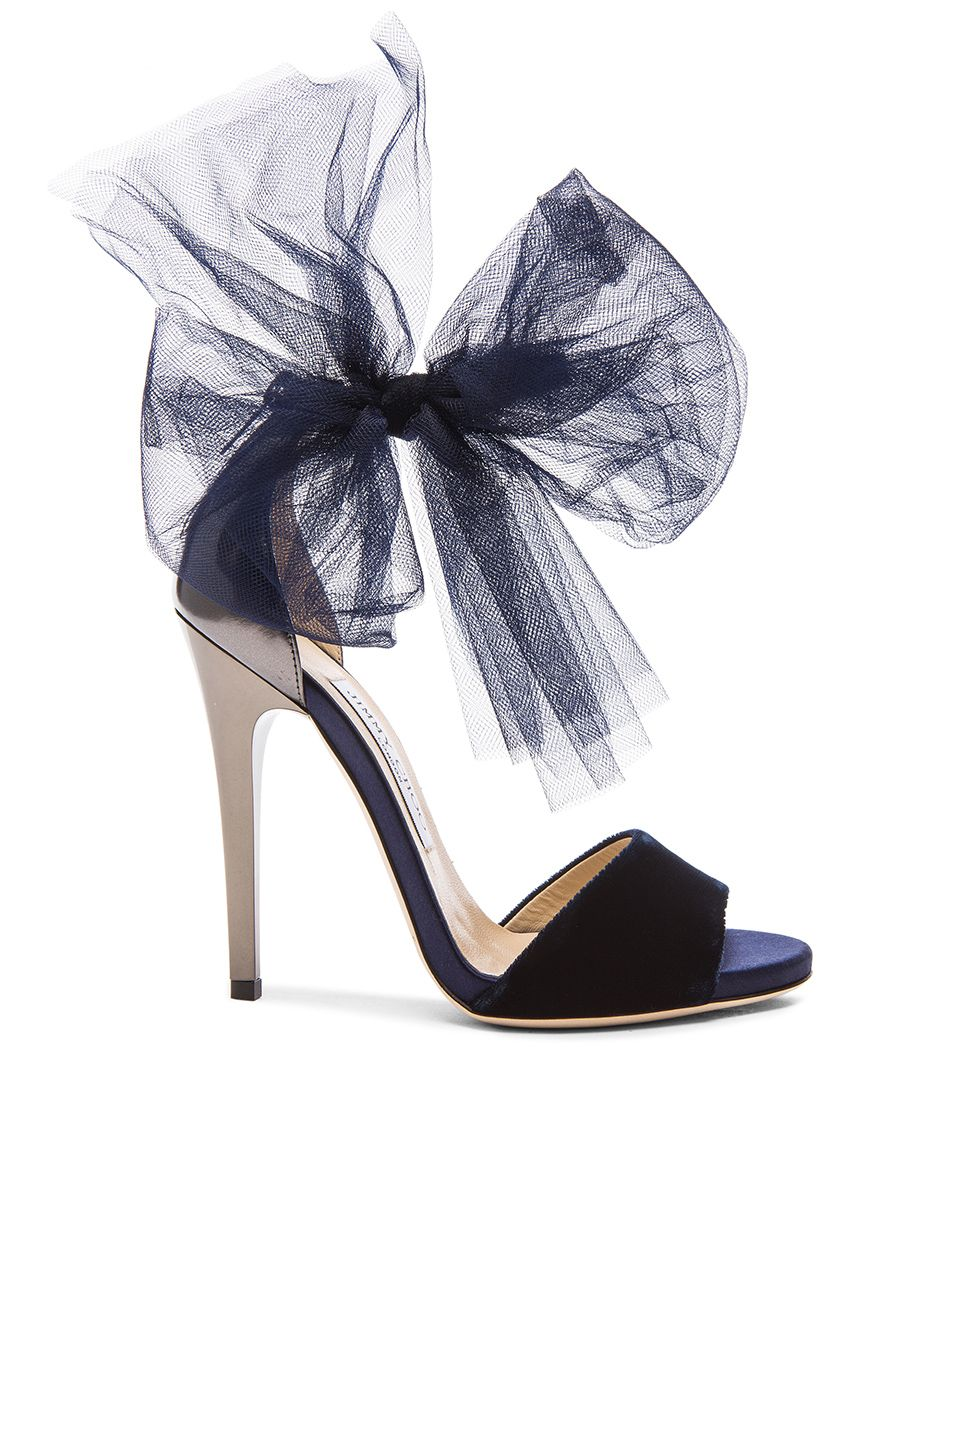 661d9183924c Jimmy Choo Lilyth Satin and Velvet Heels in Anthracite  amp  Navy